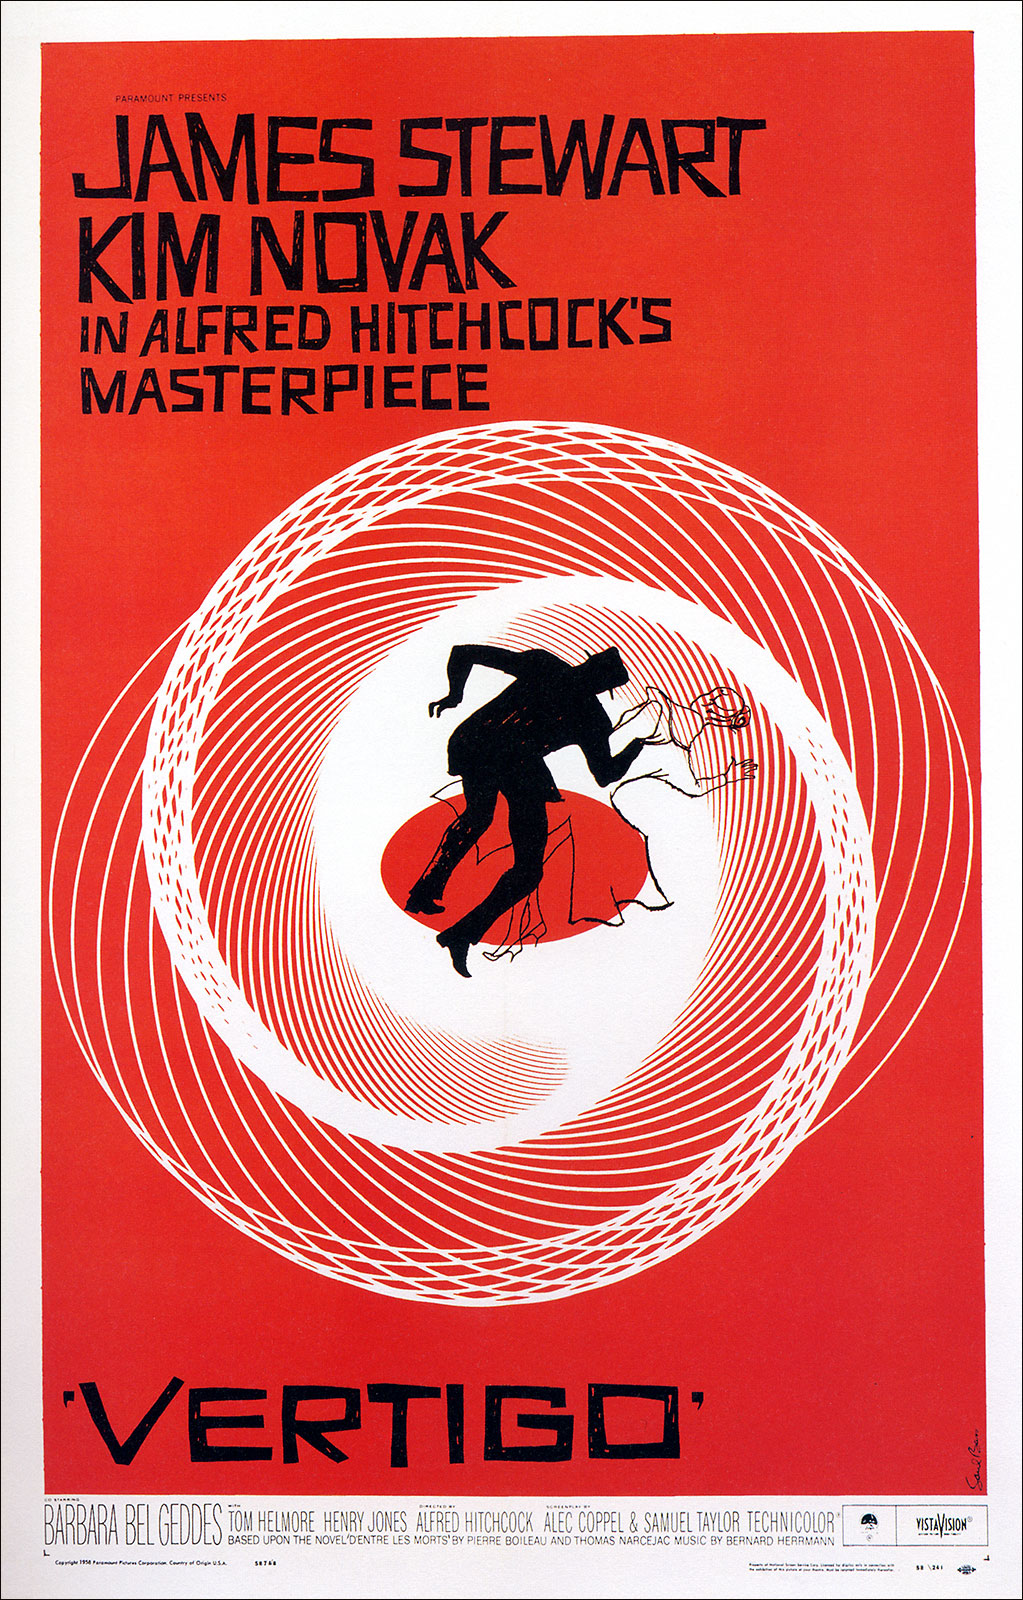 saul bass movie posters